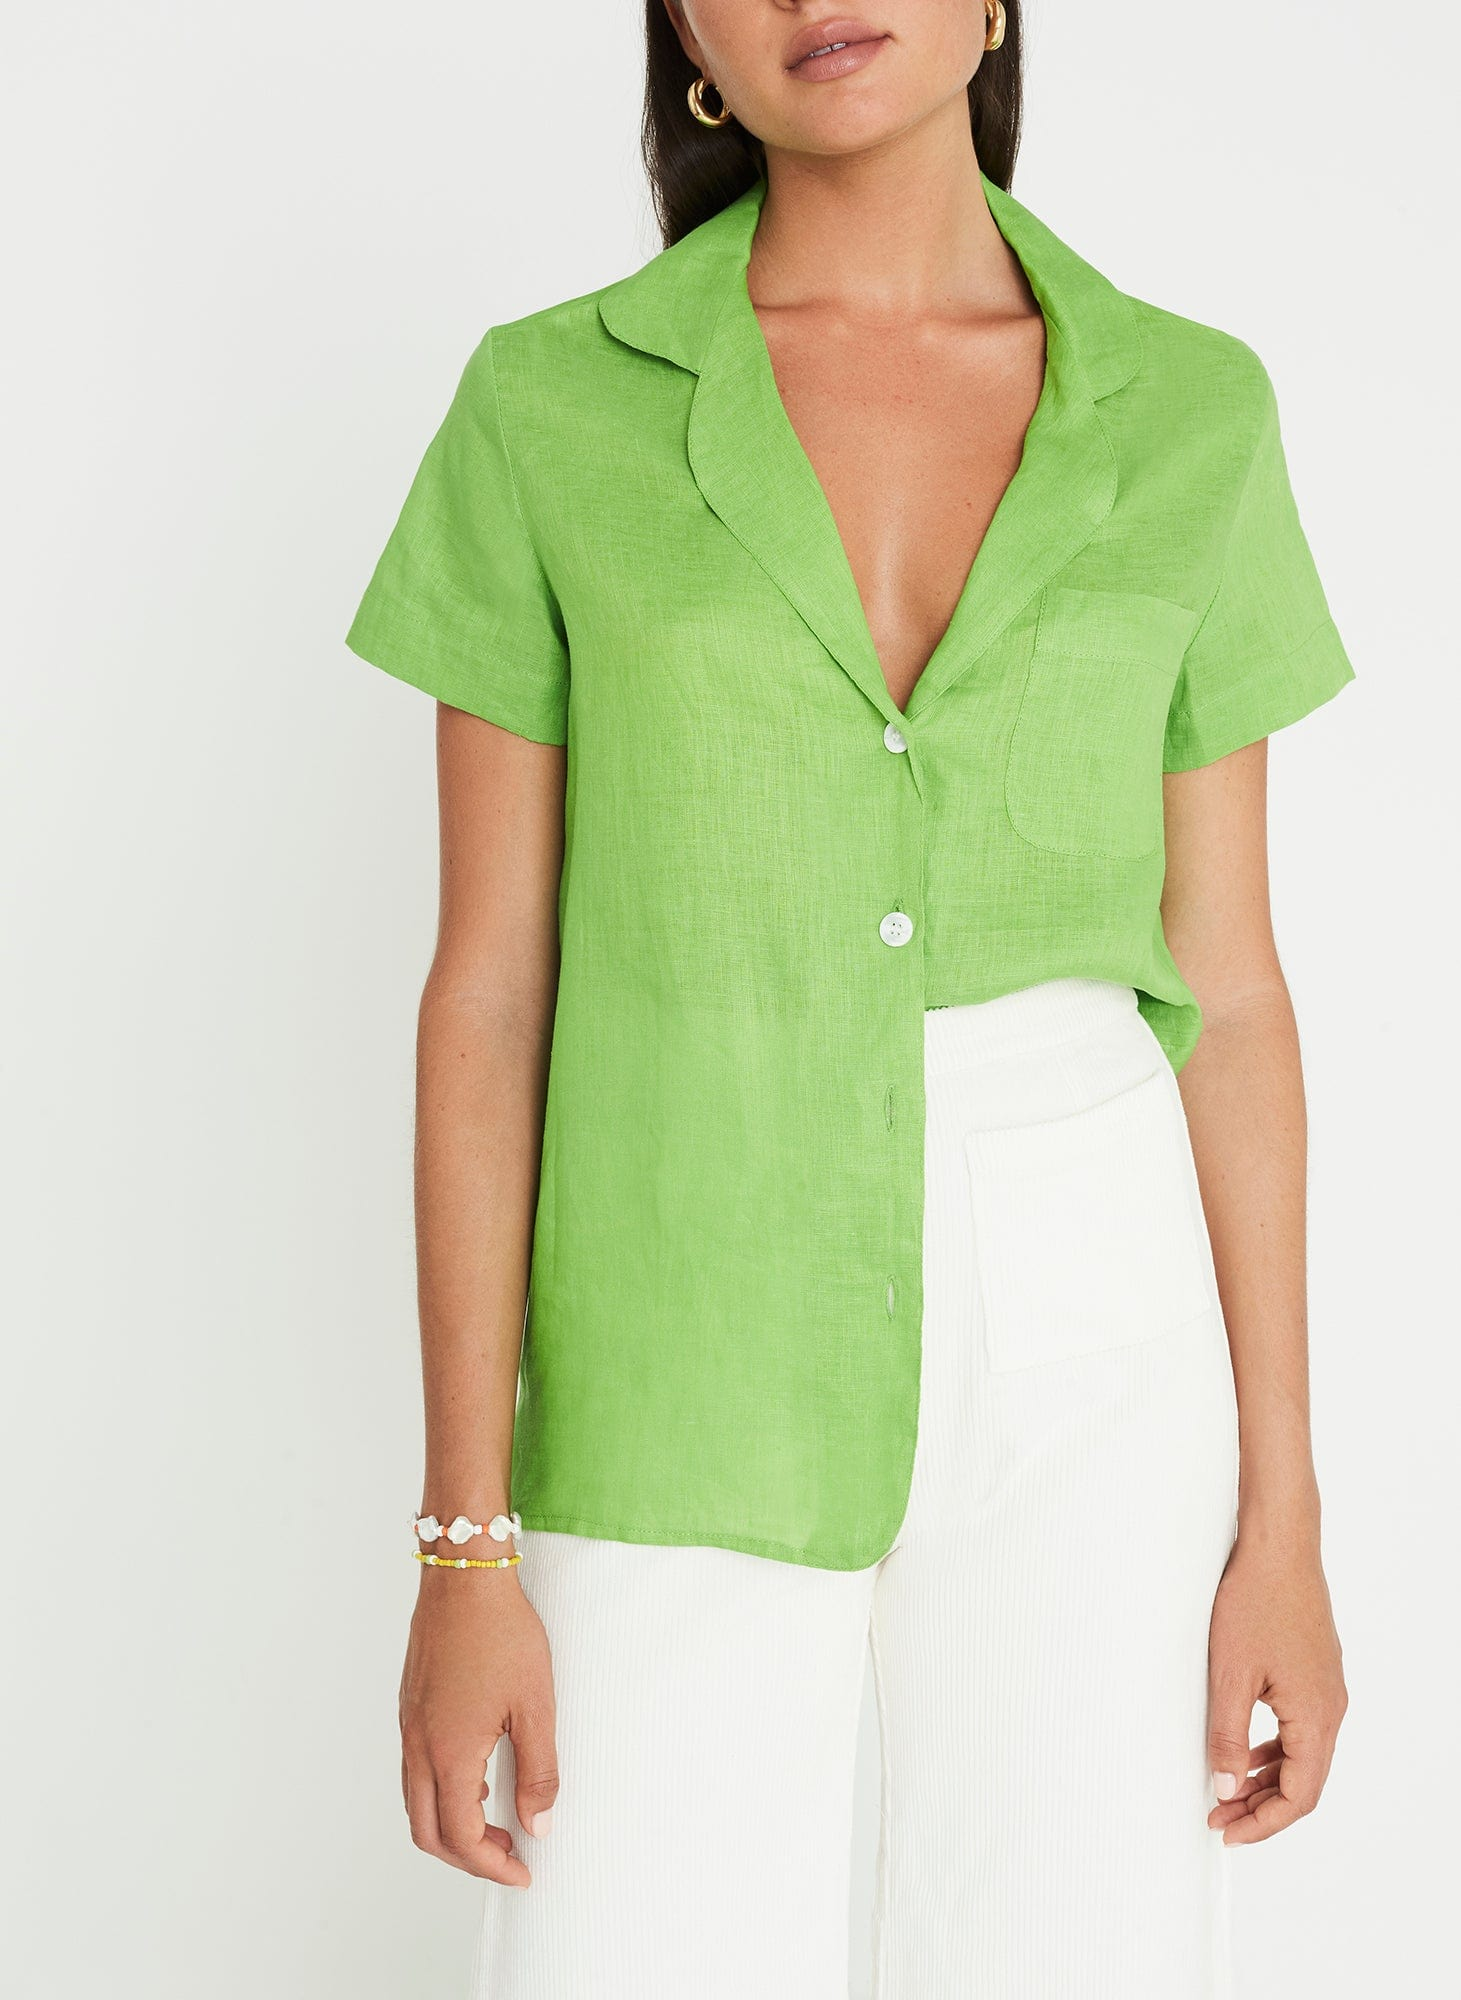 Maisy Shirt Plain Apple Green